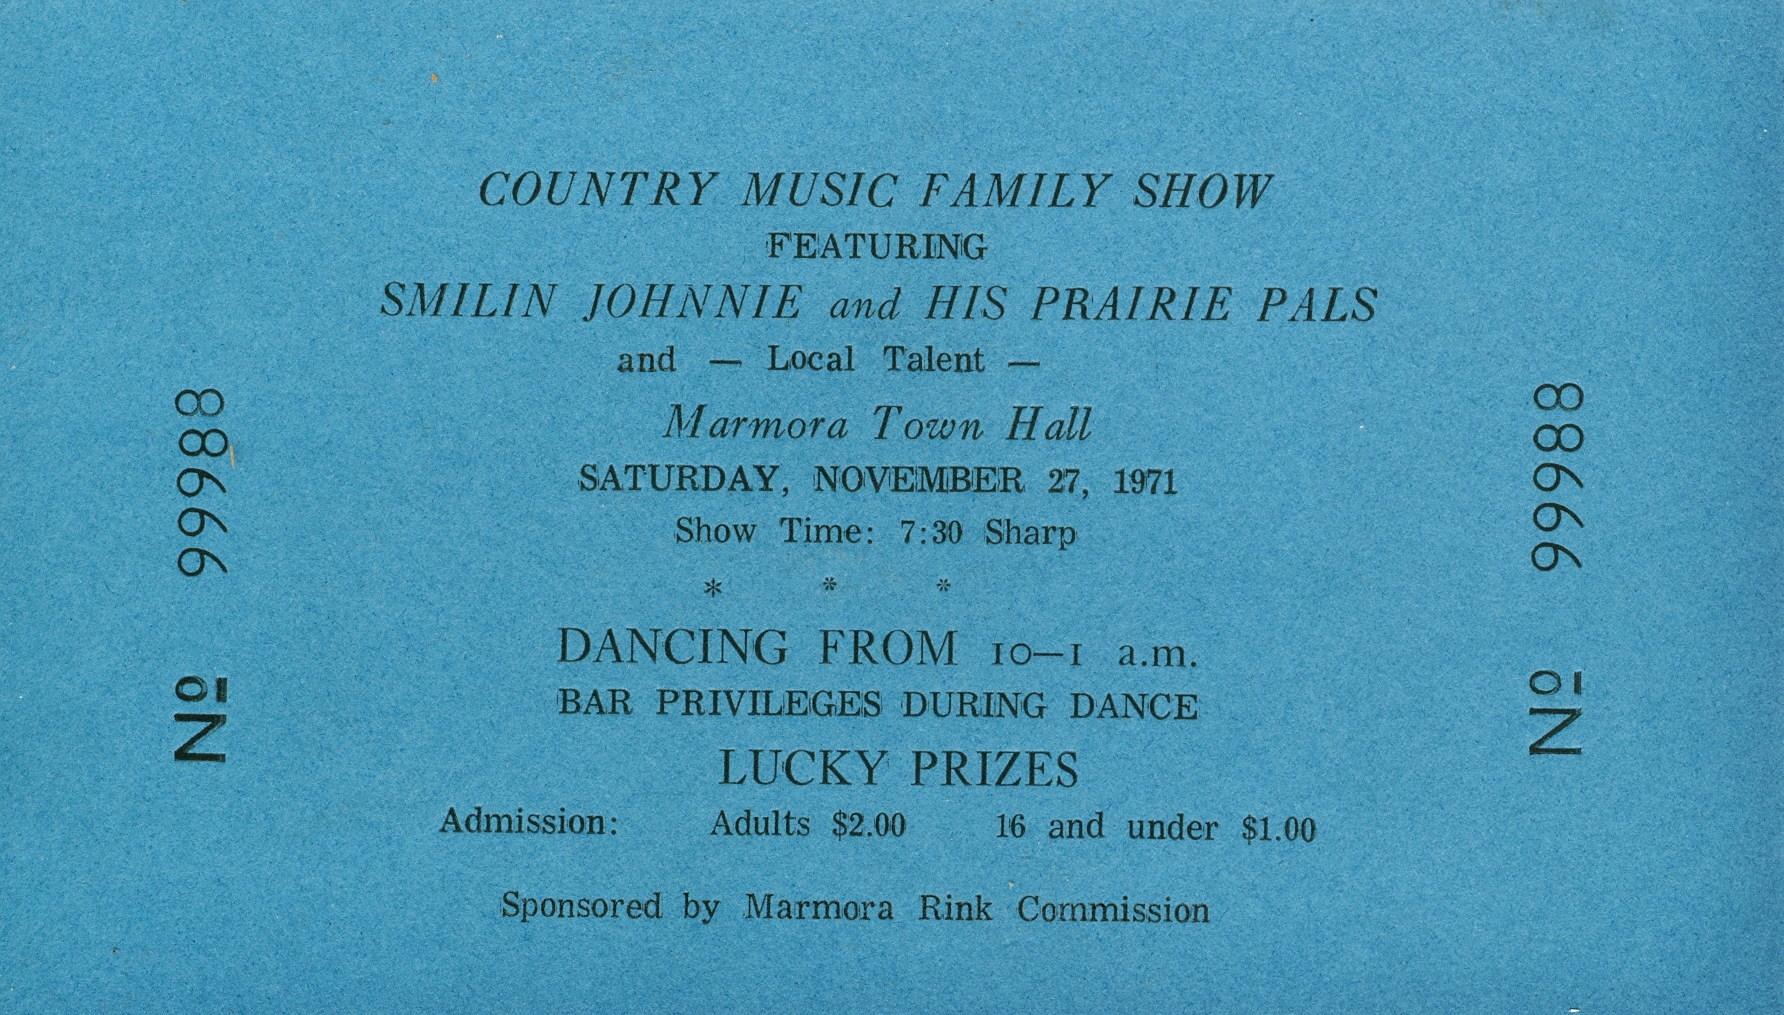 Smilin' Johnnie Country music 1971